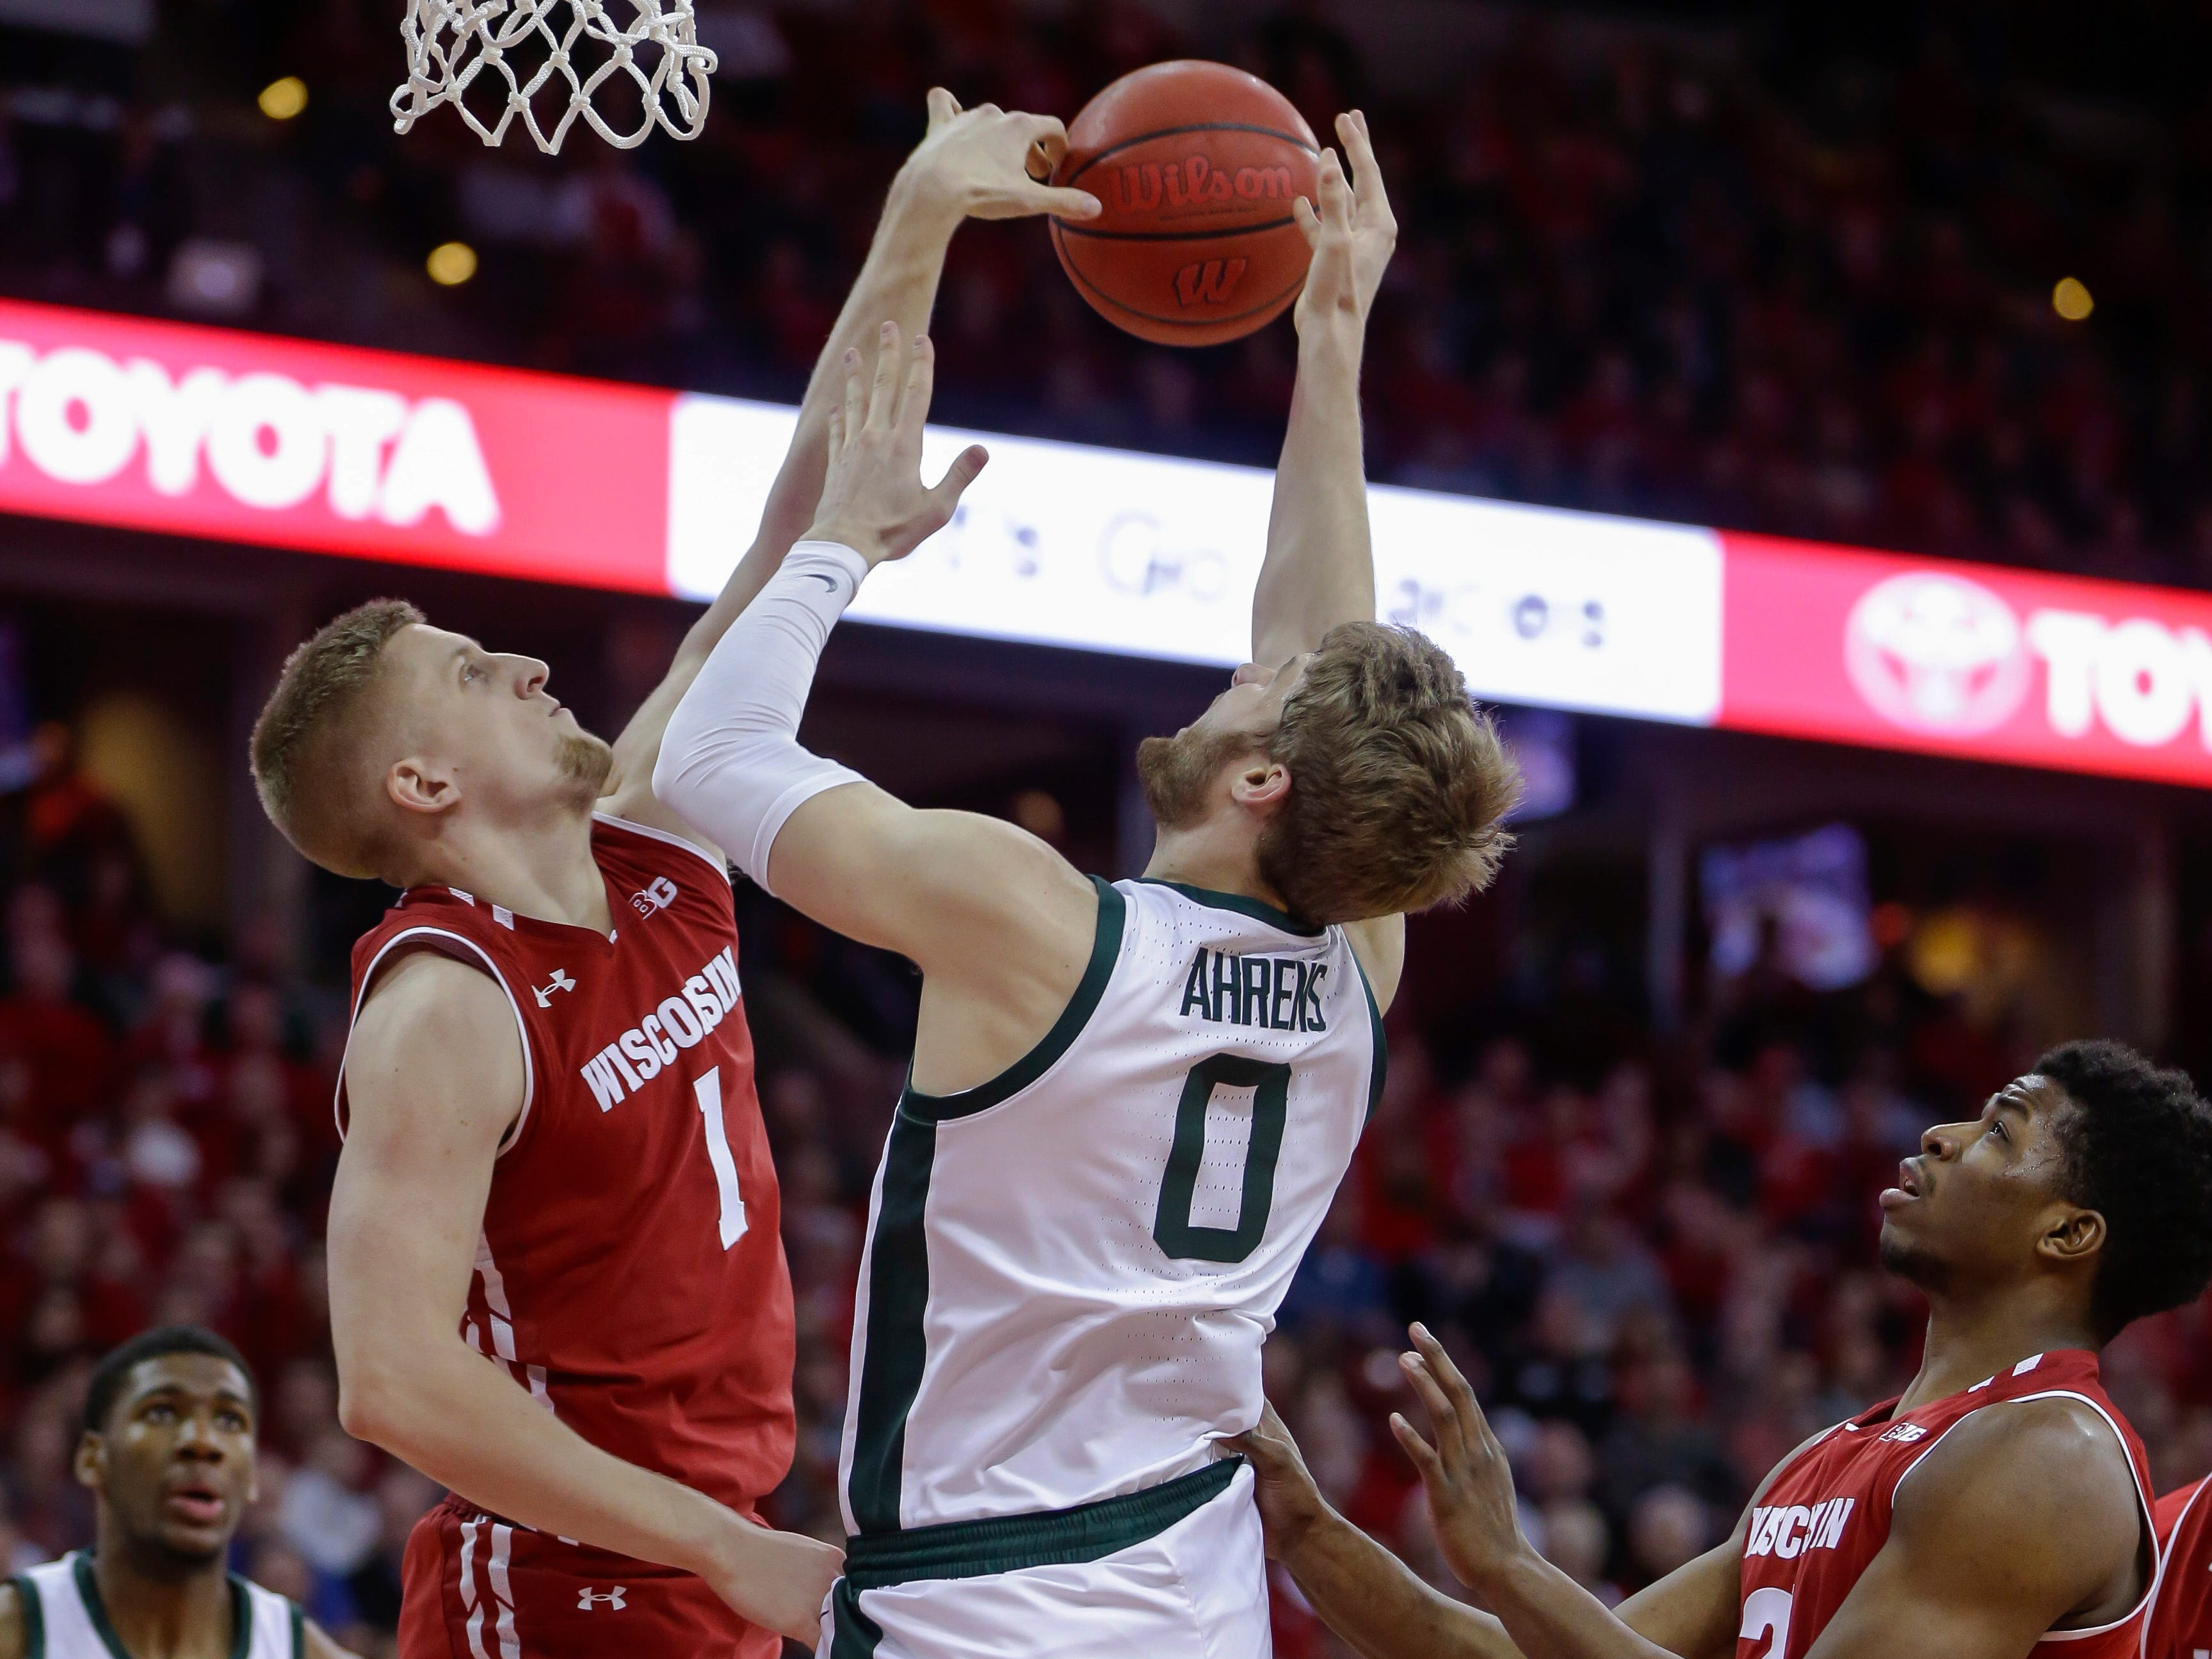 Wisconsin's Brevin Pritzl (1) blocks a shot by Michigan States's Kyle Ahrens (0) during the first half.